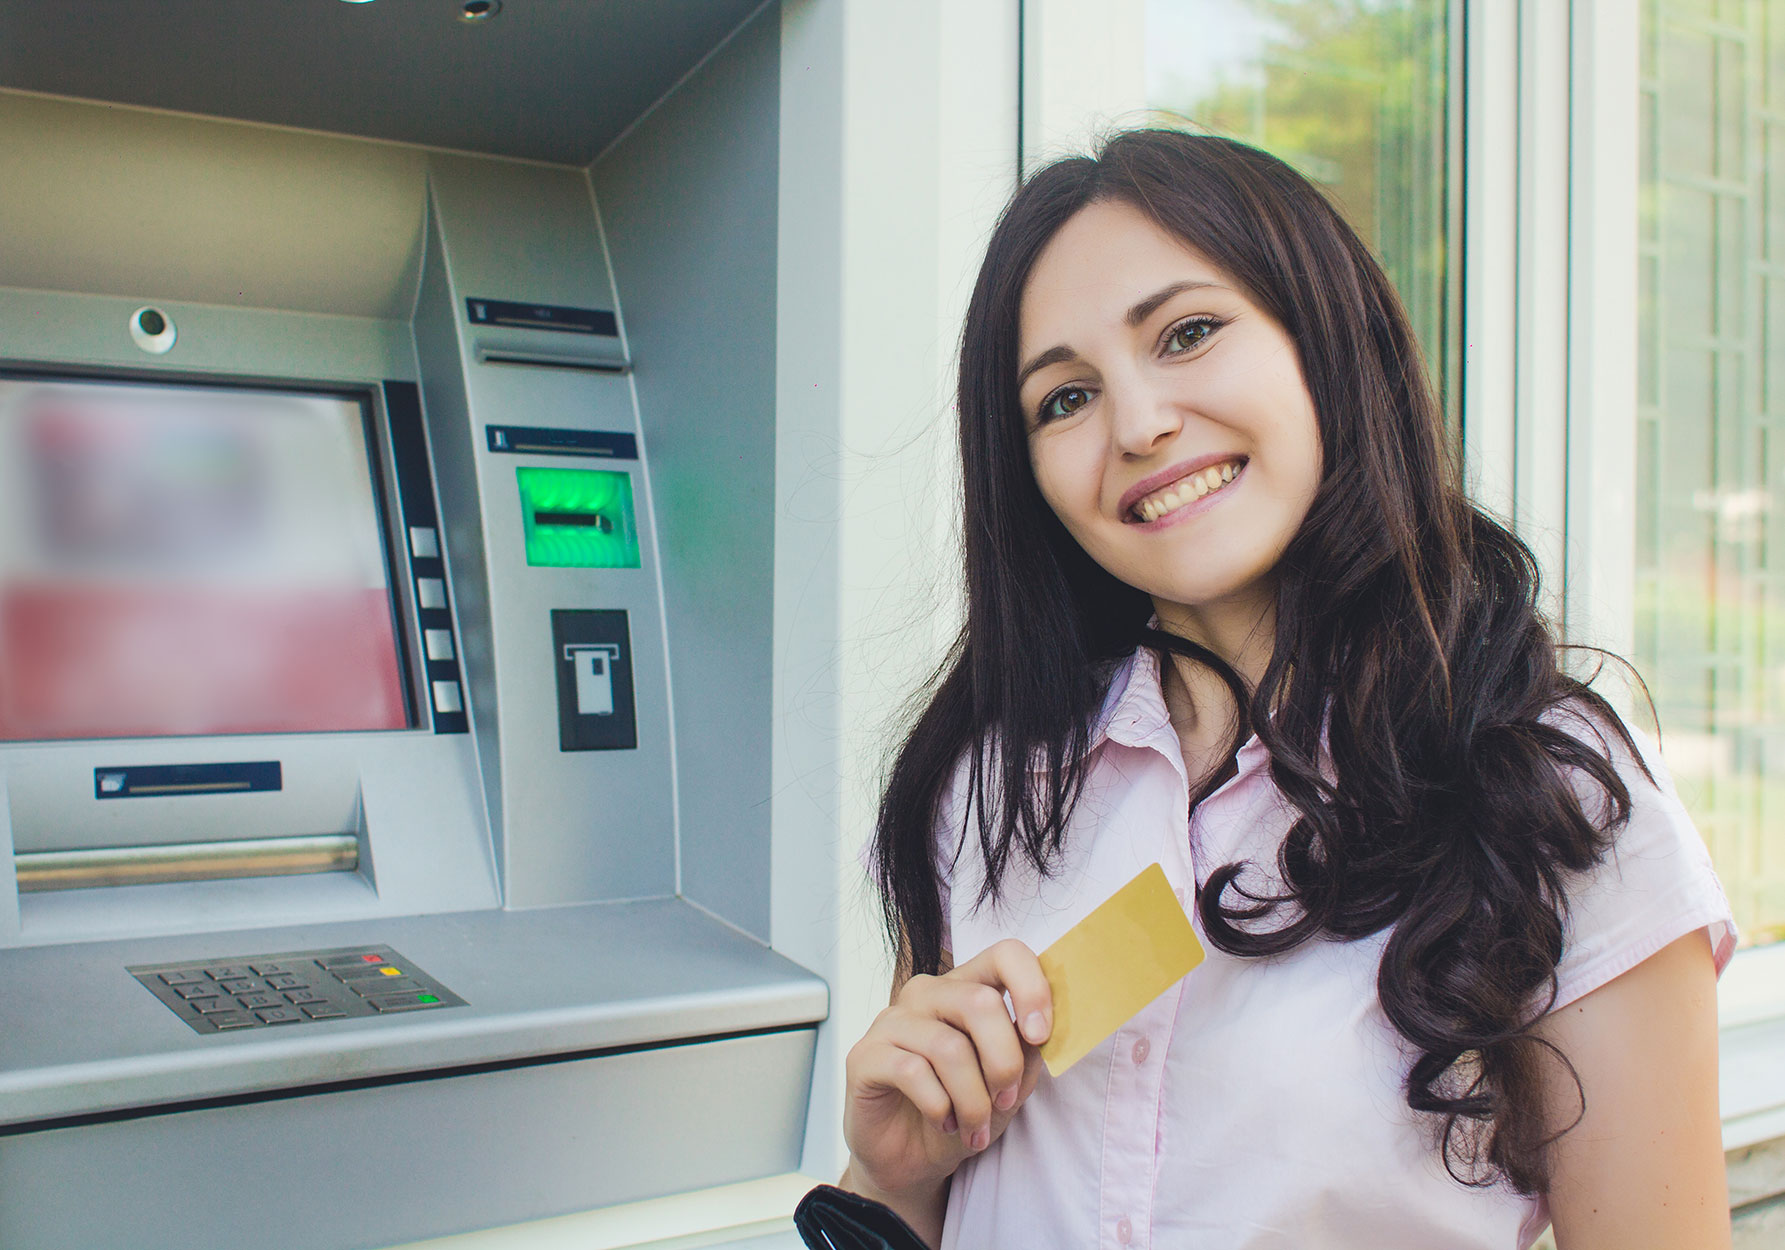 lady going through the bank atm